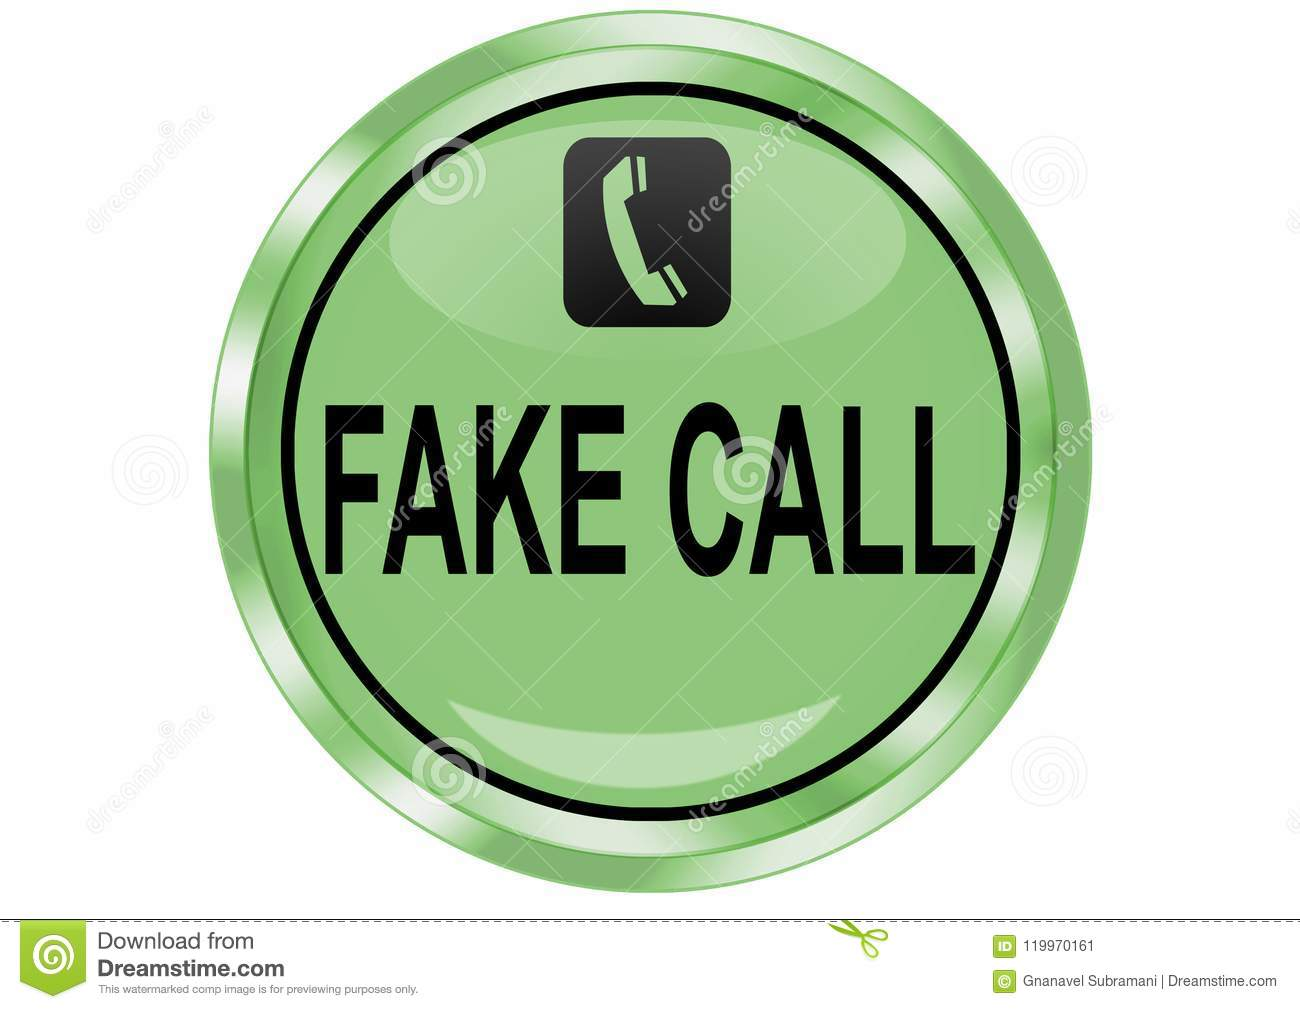 fake call download